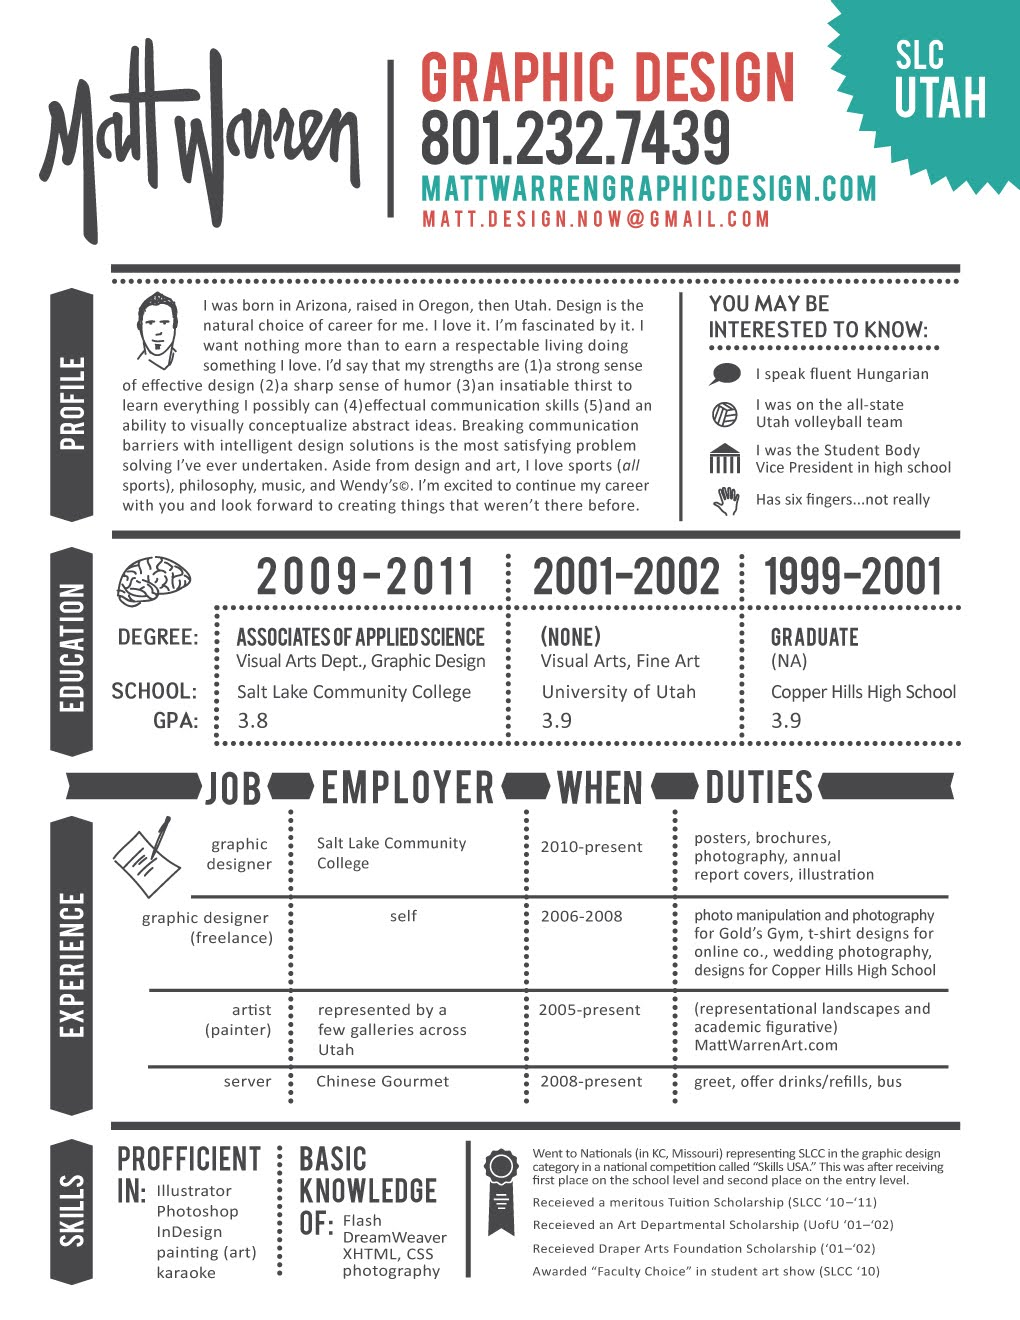 Opposenewapstandardsus  Gorgeous  Images About Hire Me On Pinterest  Graphic Designer Resume  With Likable  Images About Hire Me On Pinterest  Graphic Designer Resume Resume Design And Resume With Endearing Mechanical Engineering Resumes Also What Does A Job Resume Look Like In Addition Great Resume Template And Sample Resume Medical Assistant As Well As Taco Bell Resume Additionally Work History On Resume From Pinterestcom With Opposenewapstandardsus  Likable  Images About Hire Me On Pinterest  Graphic Designer Resume  With Endearing  Images About Hire Me On Pinterest  Graphic Designer Resume Resume Design And Resume And Gorgeous Mechanical Engineering Resumes Also What Does A Job Resume Look Like In Addition Great Resume Template From Pinterestcom